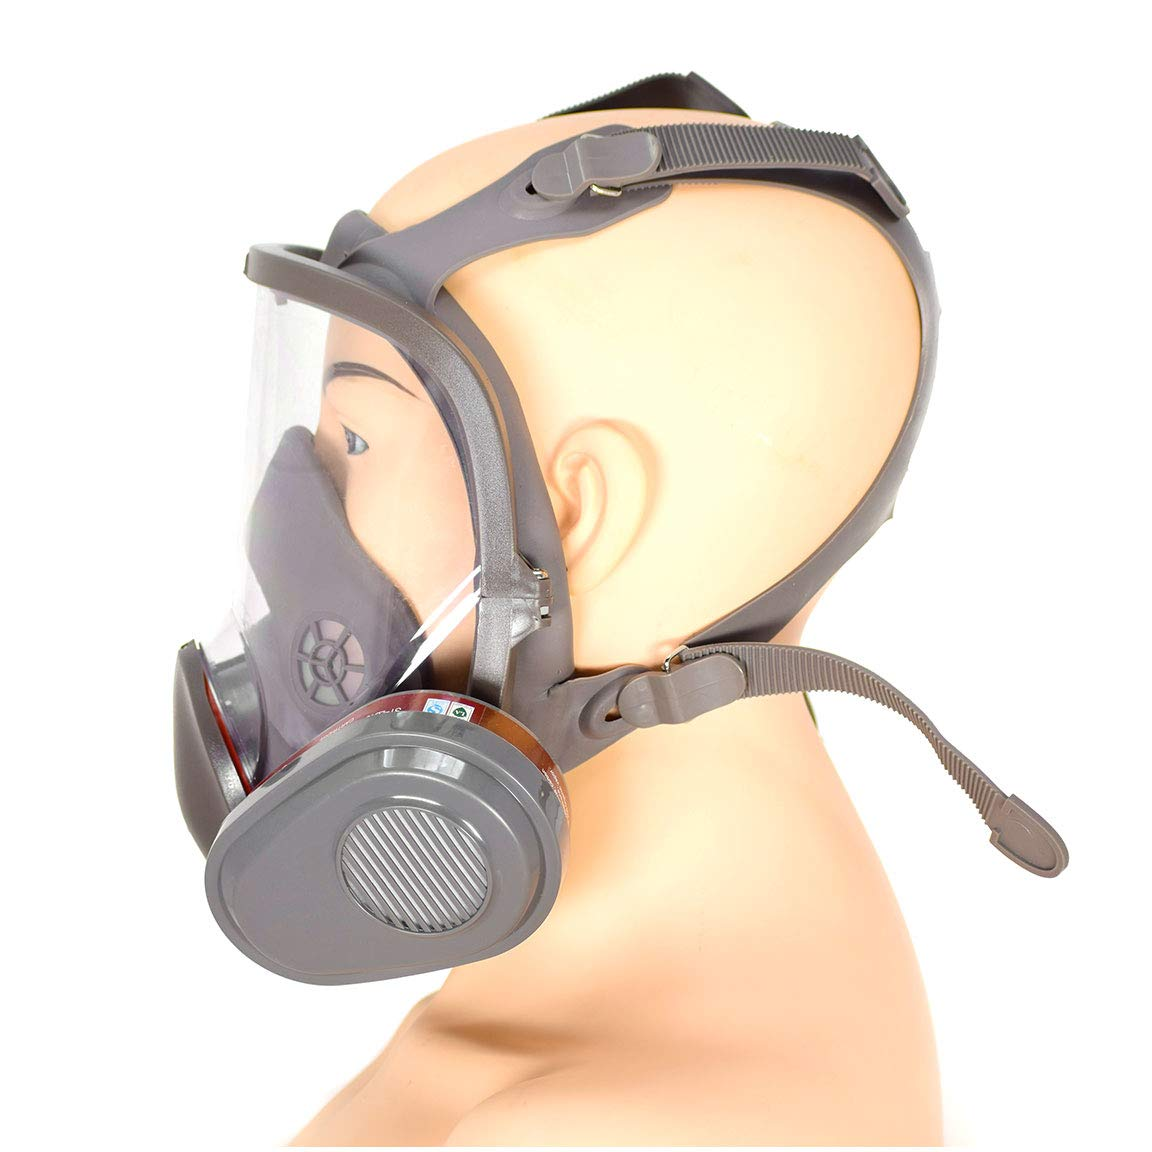 PD-600 Full Face N95 Respirator – ASTM Certified – Double N95 Activated Charcoal Air filter – Industrial Grade Quality by Parcil Distribution (Image #4)